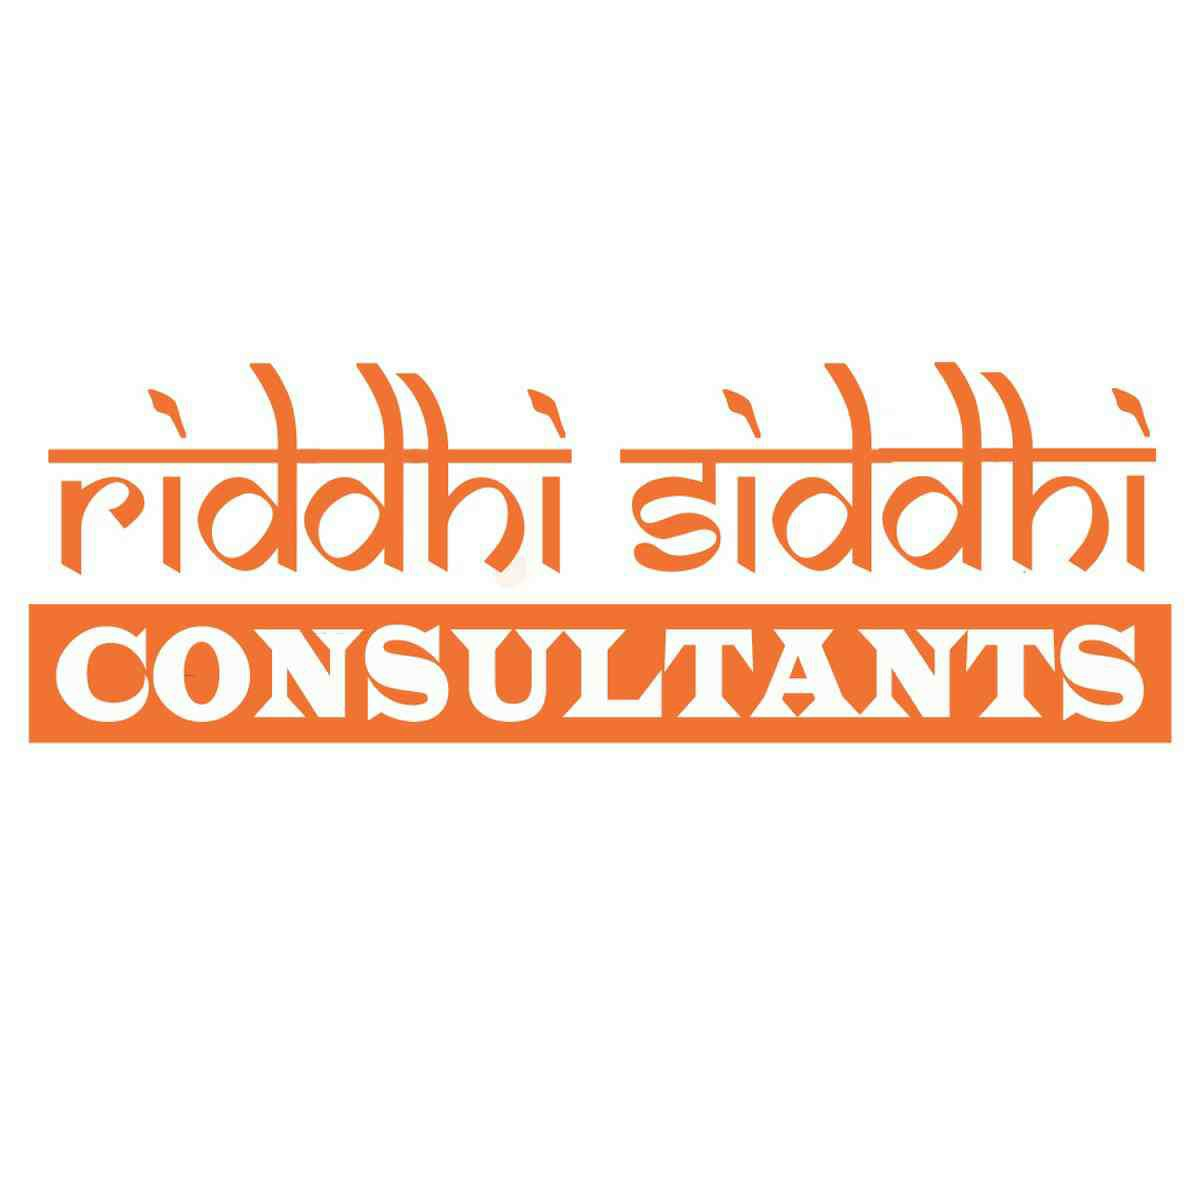 Riddhi Siddhi Consultants